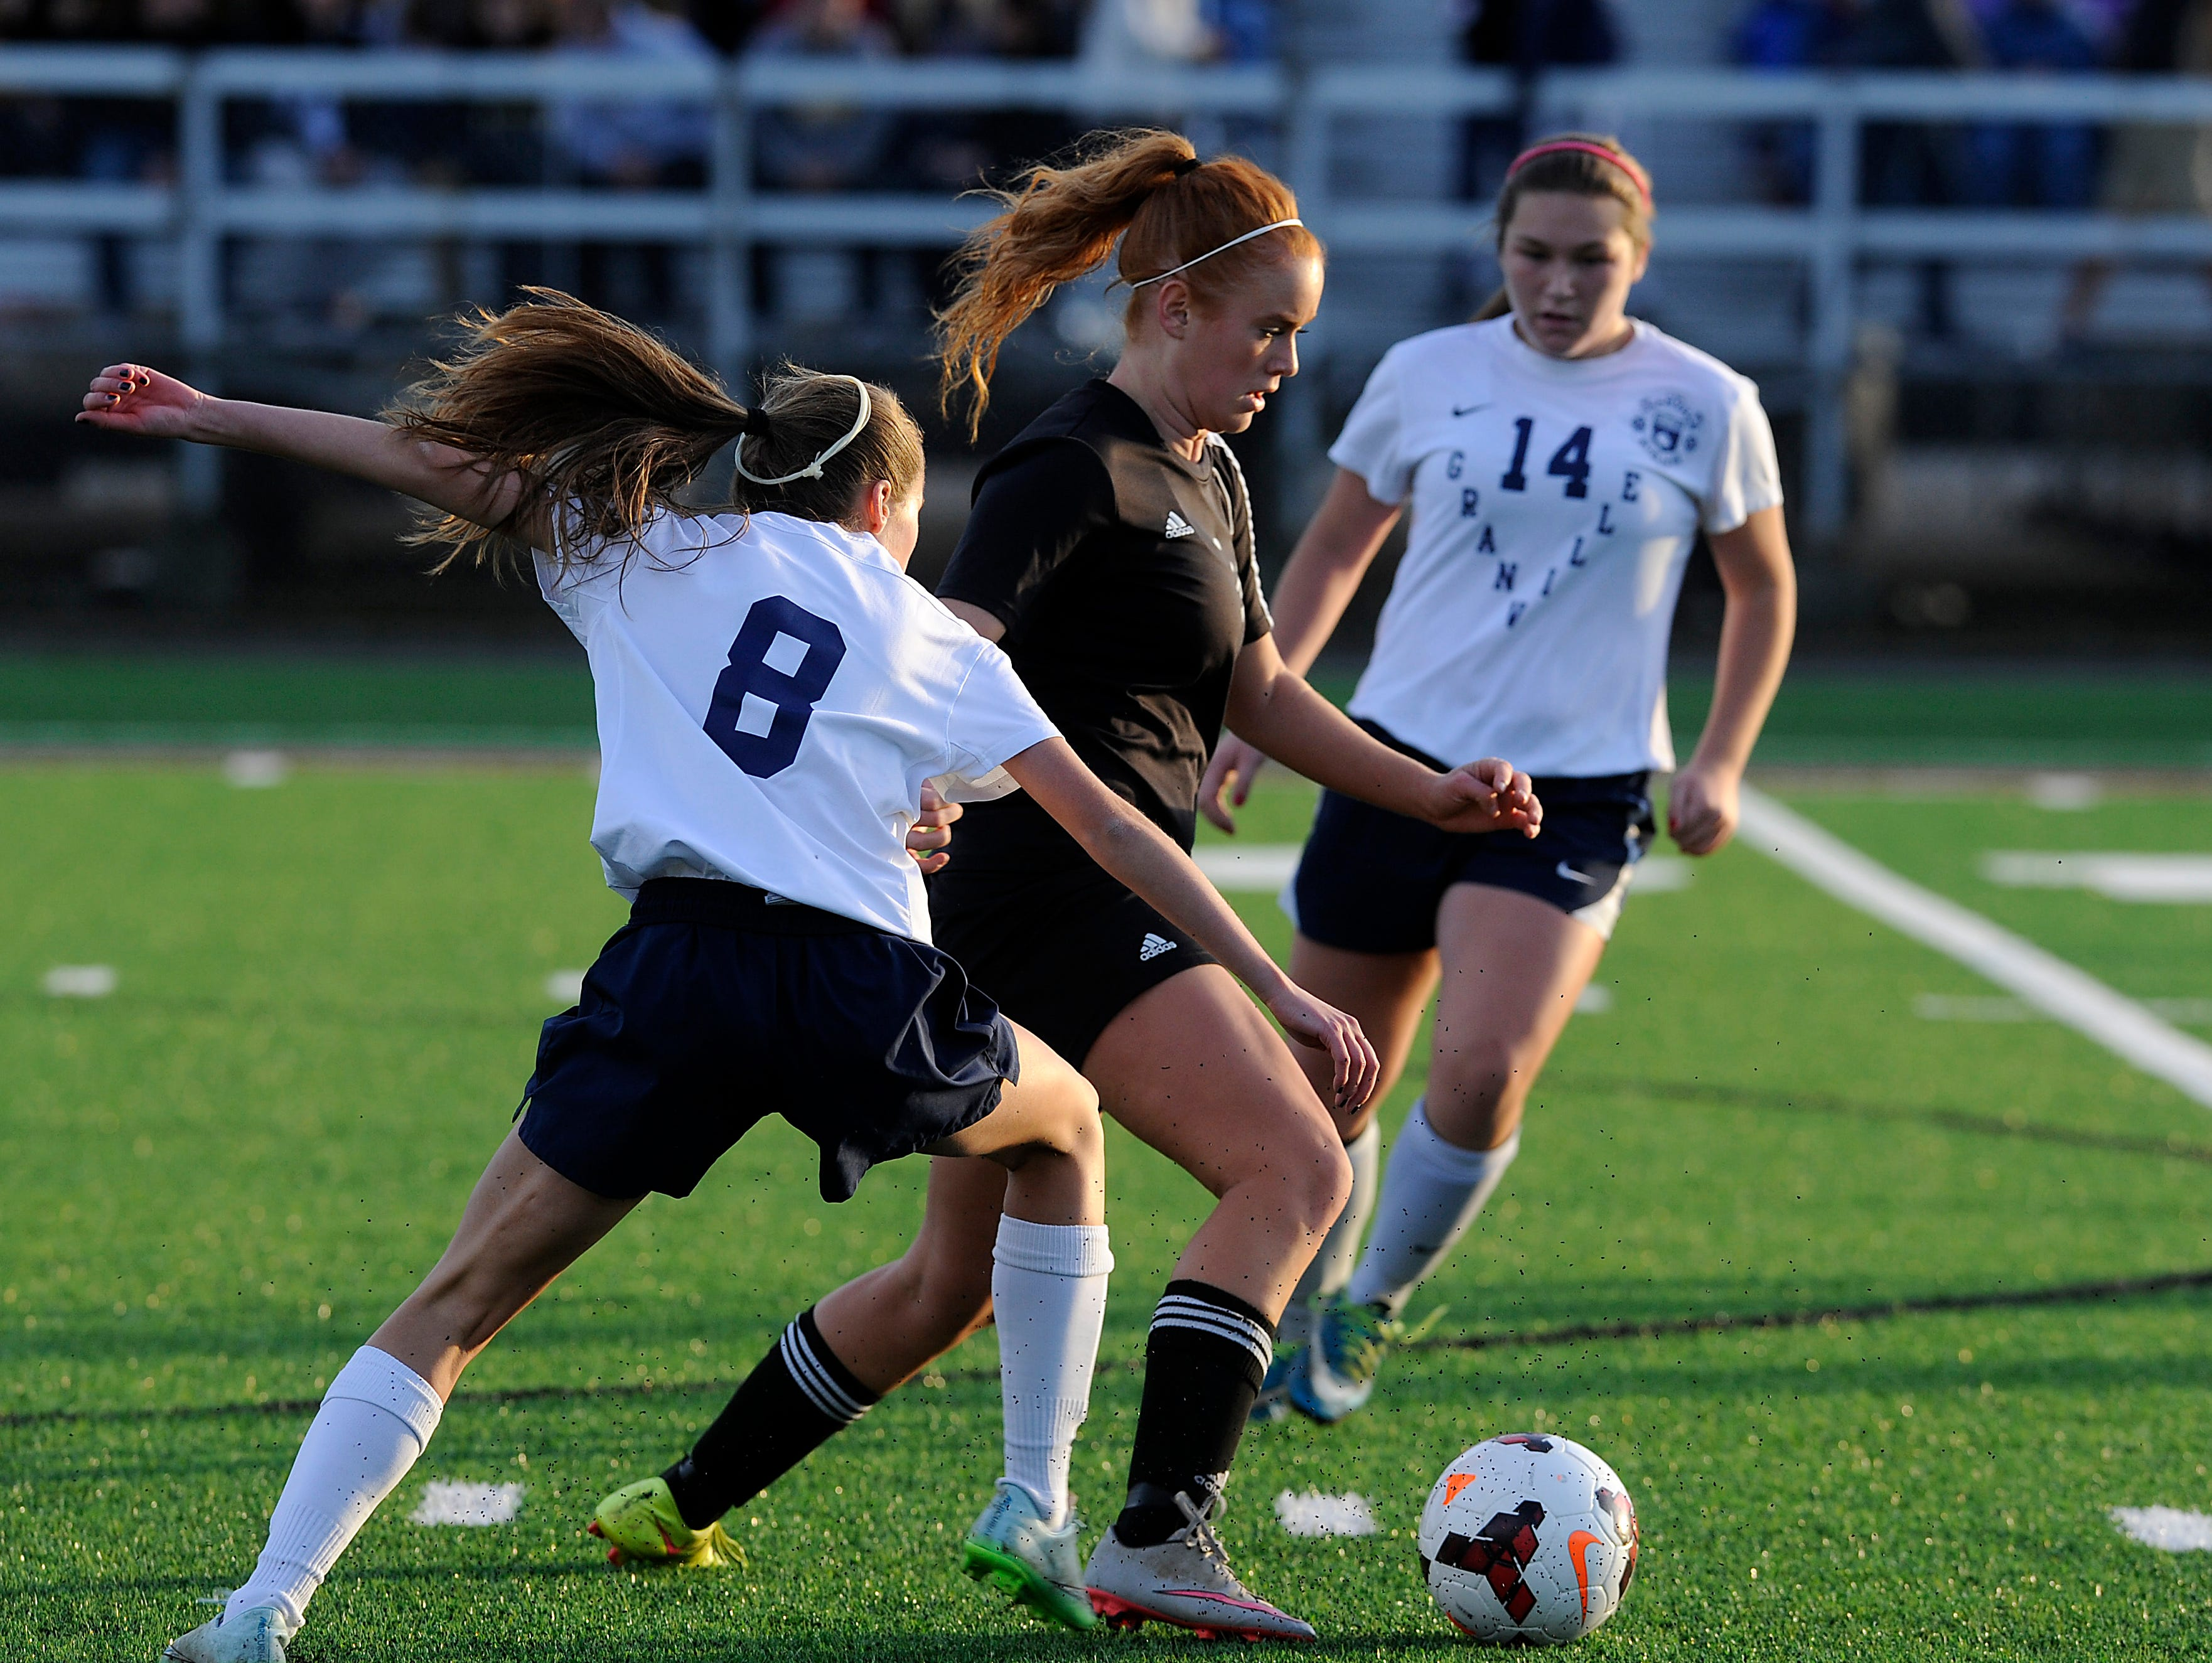 Tri-Valley's Kylee Ritchie steals the ball from Granville's Alyssa Christian. Granville defeated Tri-Valley 10-1 in the Division II regional final on Saturday, Nov. 7, 2015, at White Field in Newark. The Blue Aces will advance to play Indian Hill in the state tournament.